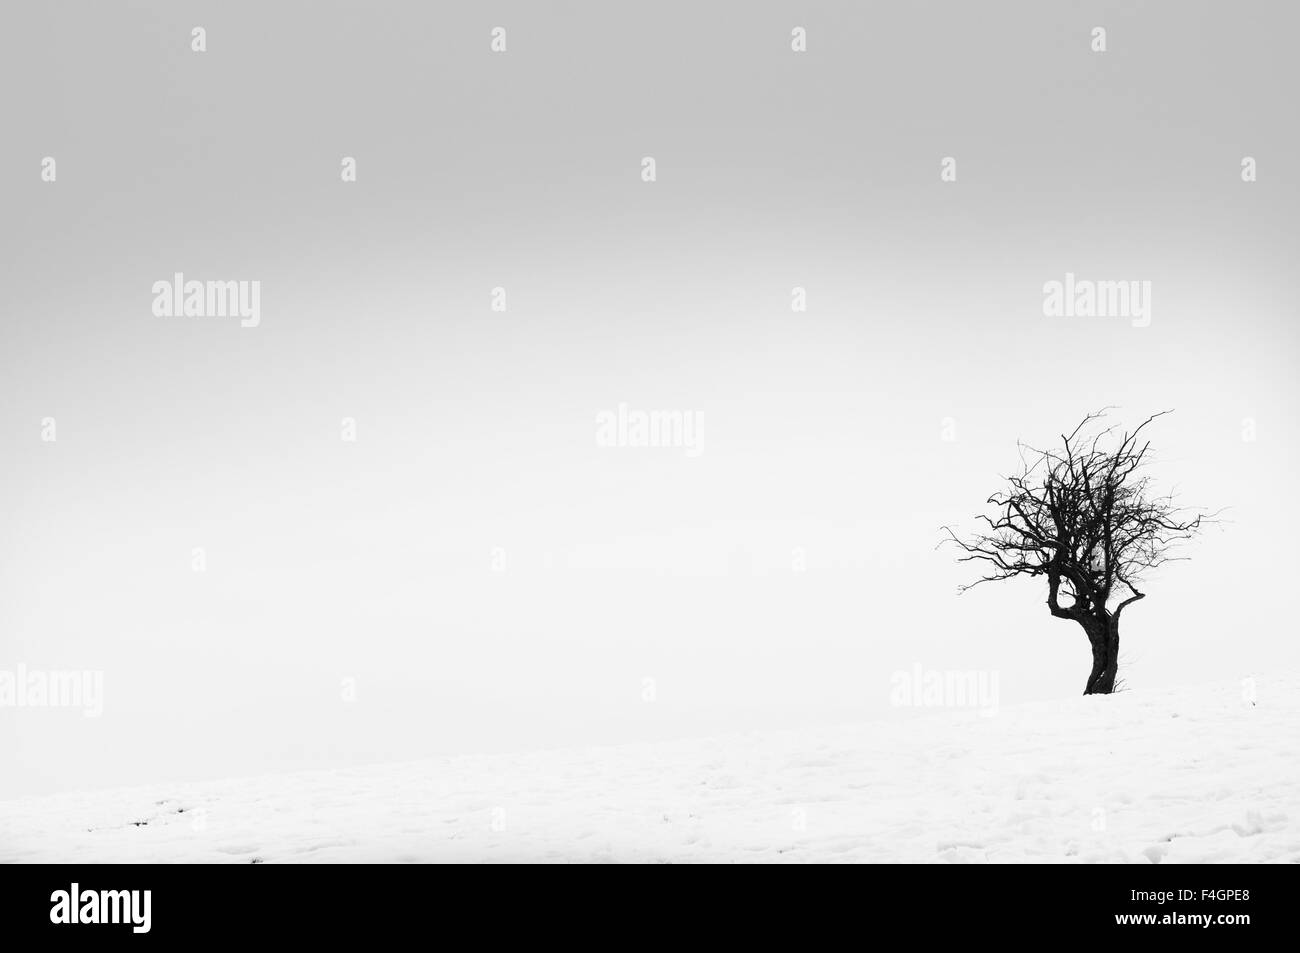 A lonely tree in a stark Winter landscape. - Stock Image